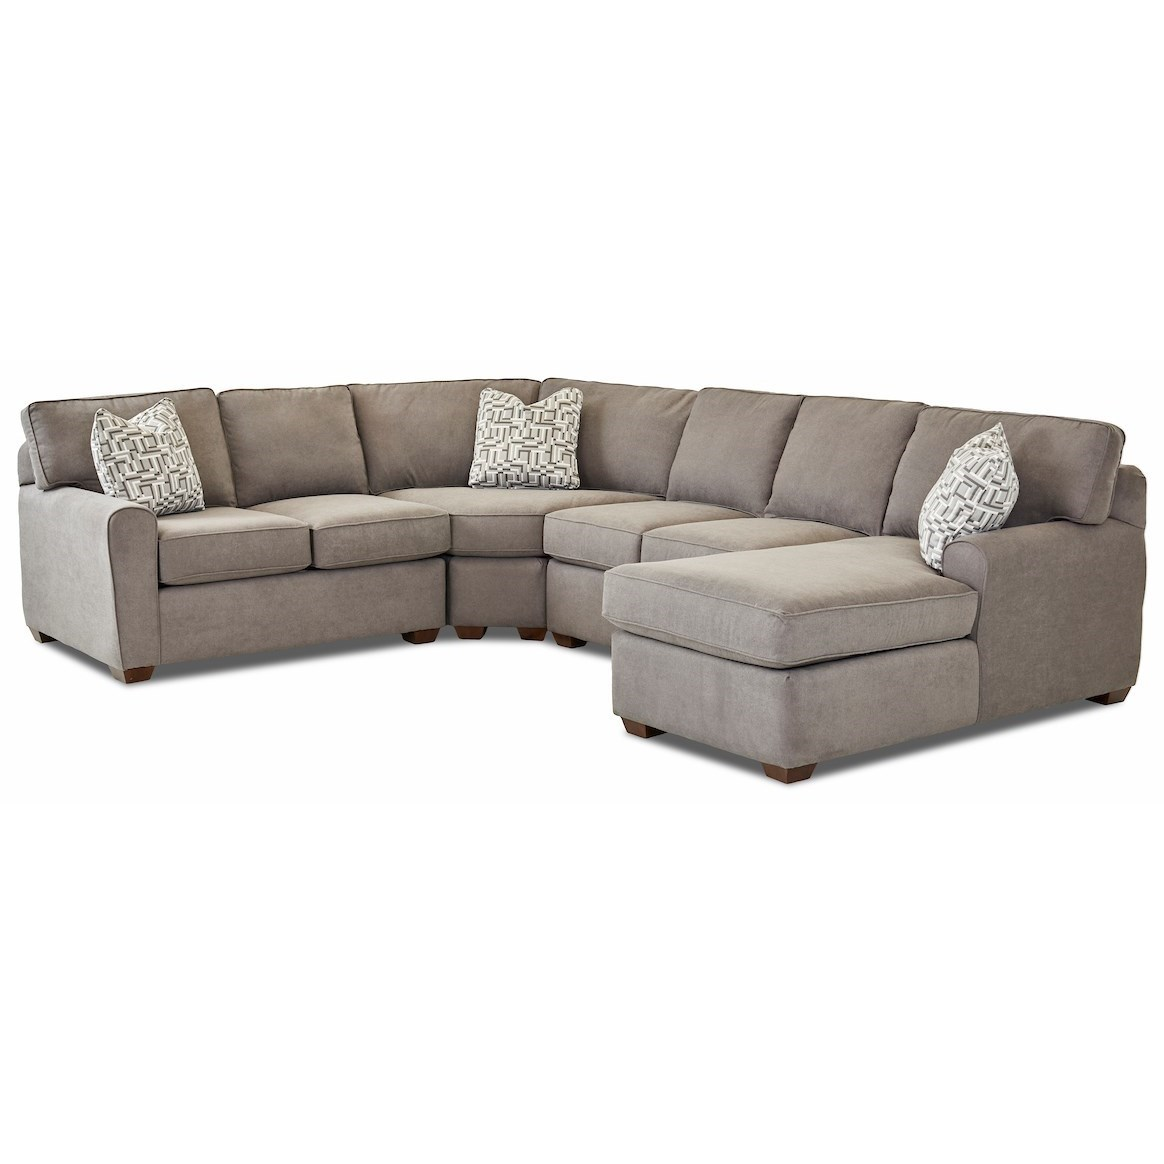 4 Pc Sectional Sofa w/RAF Chaise